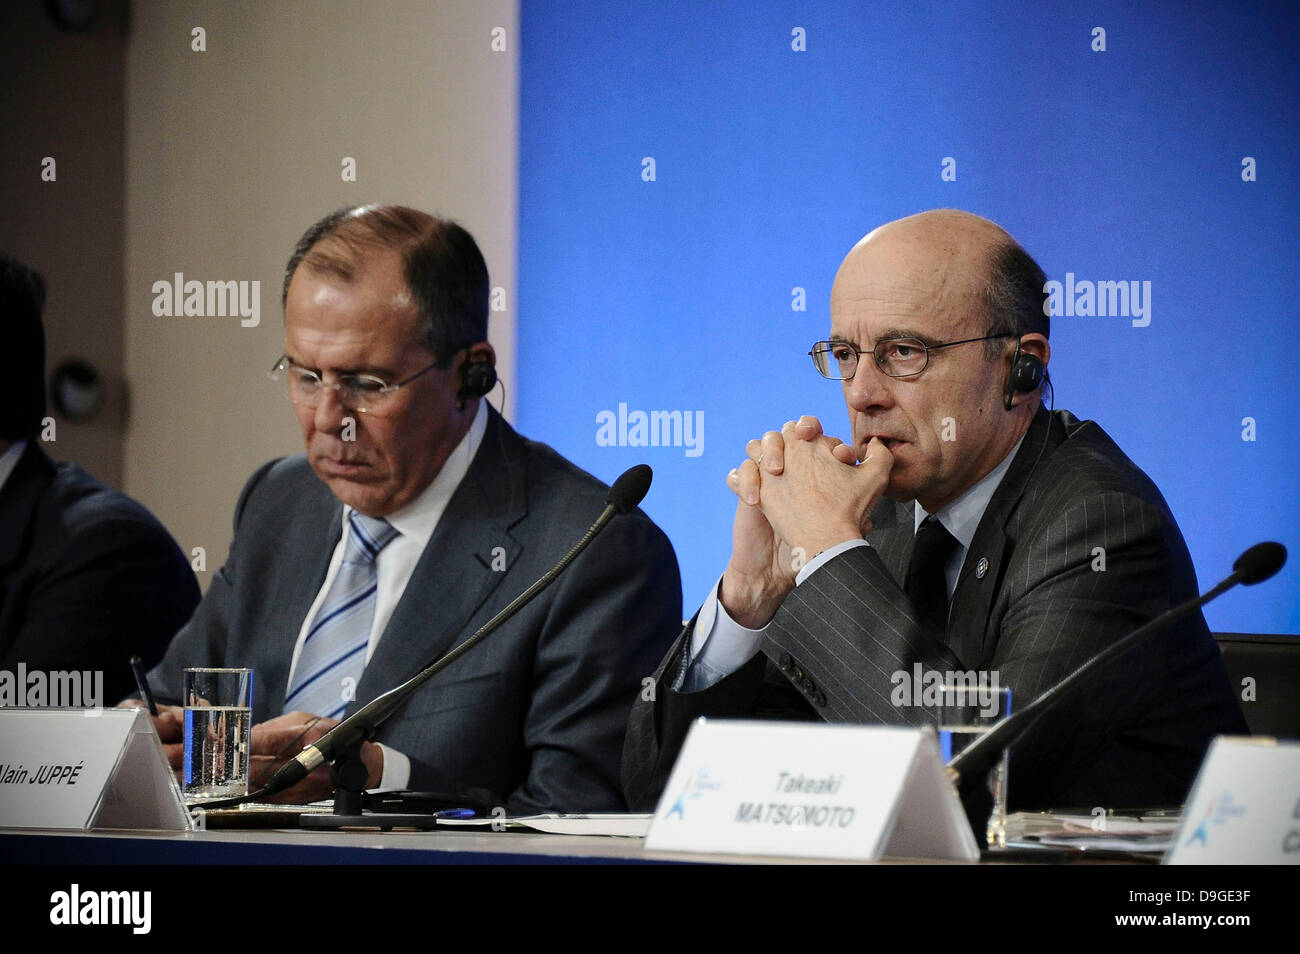 G8 Foreign Ministers Russian Sergei Lavrov, French Alain Juppe  during a joint press conference on March 15, 2011 - Stock Image